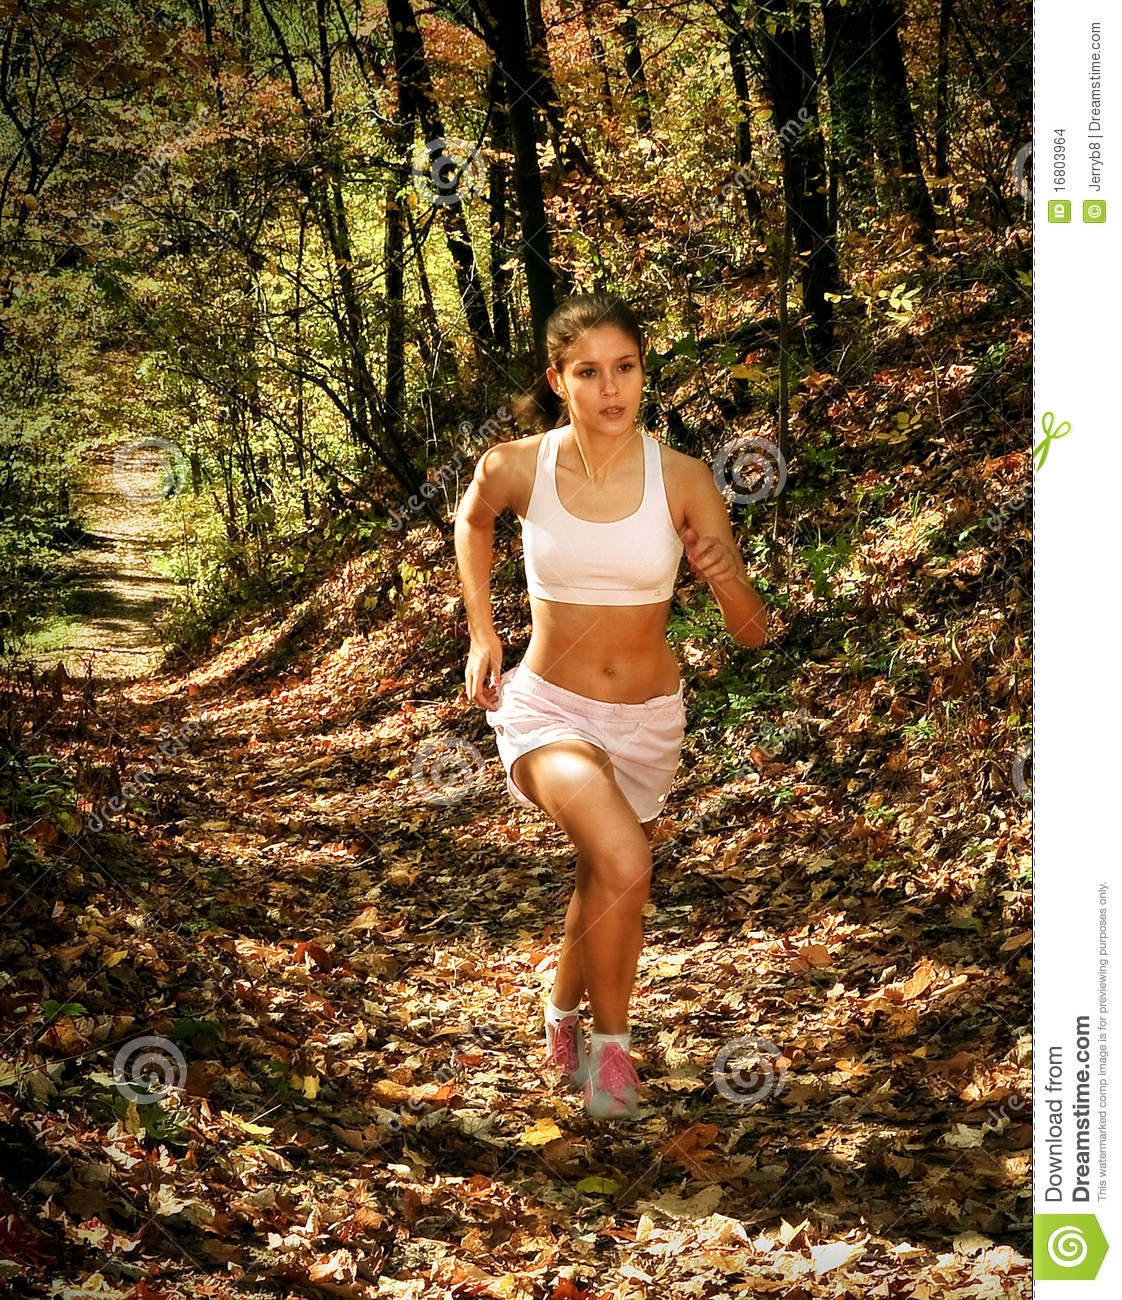 Woman In Jogging Attire Stock Images - Image: 16803964